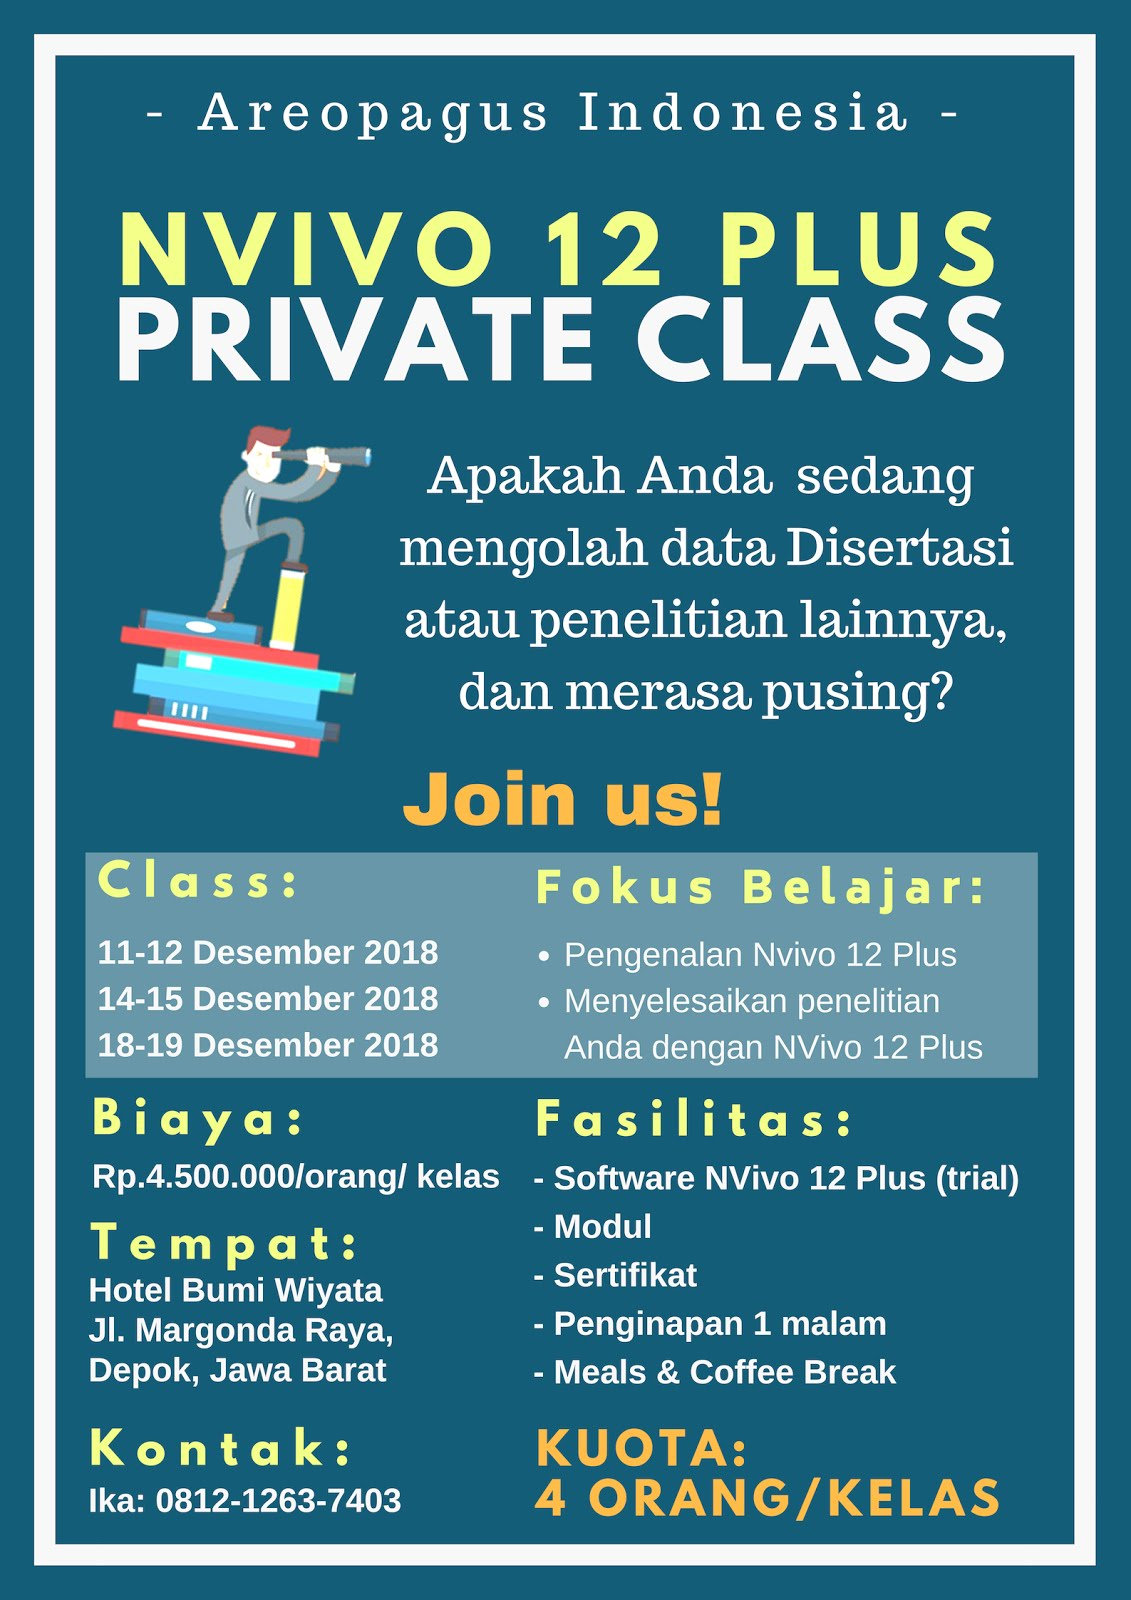 NVIVO 12 PLUS PRIVATE CLASS